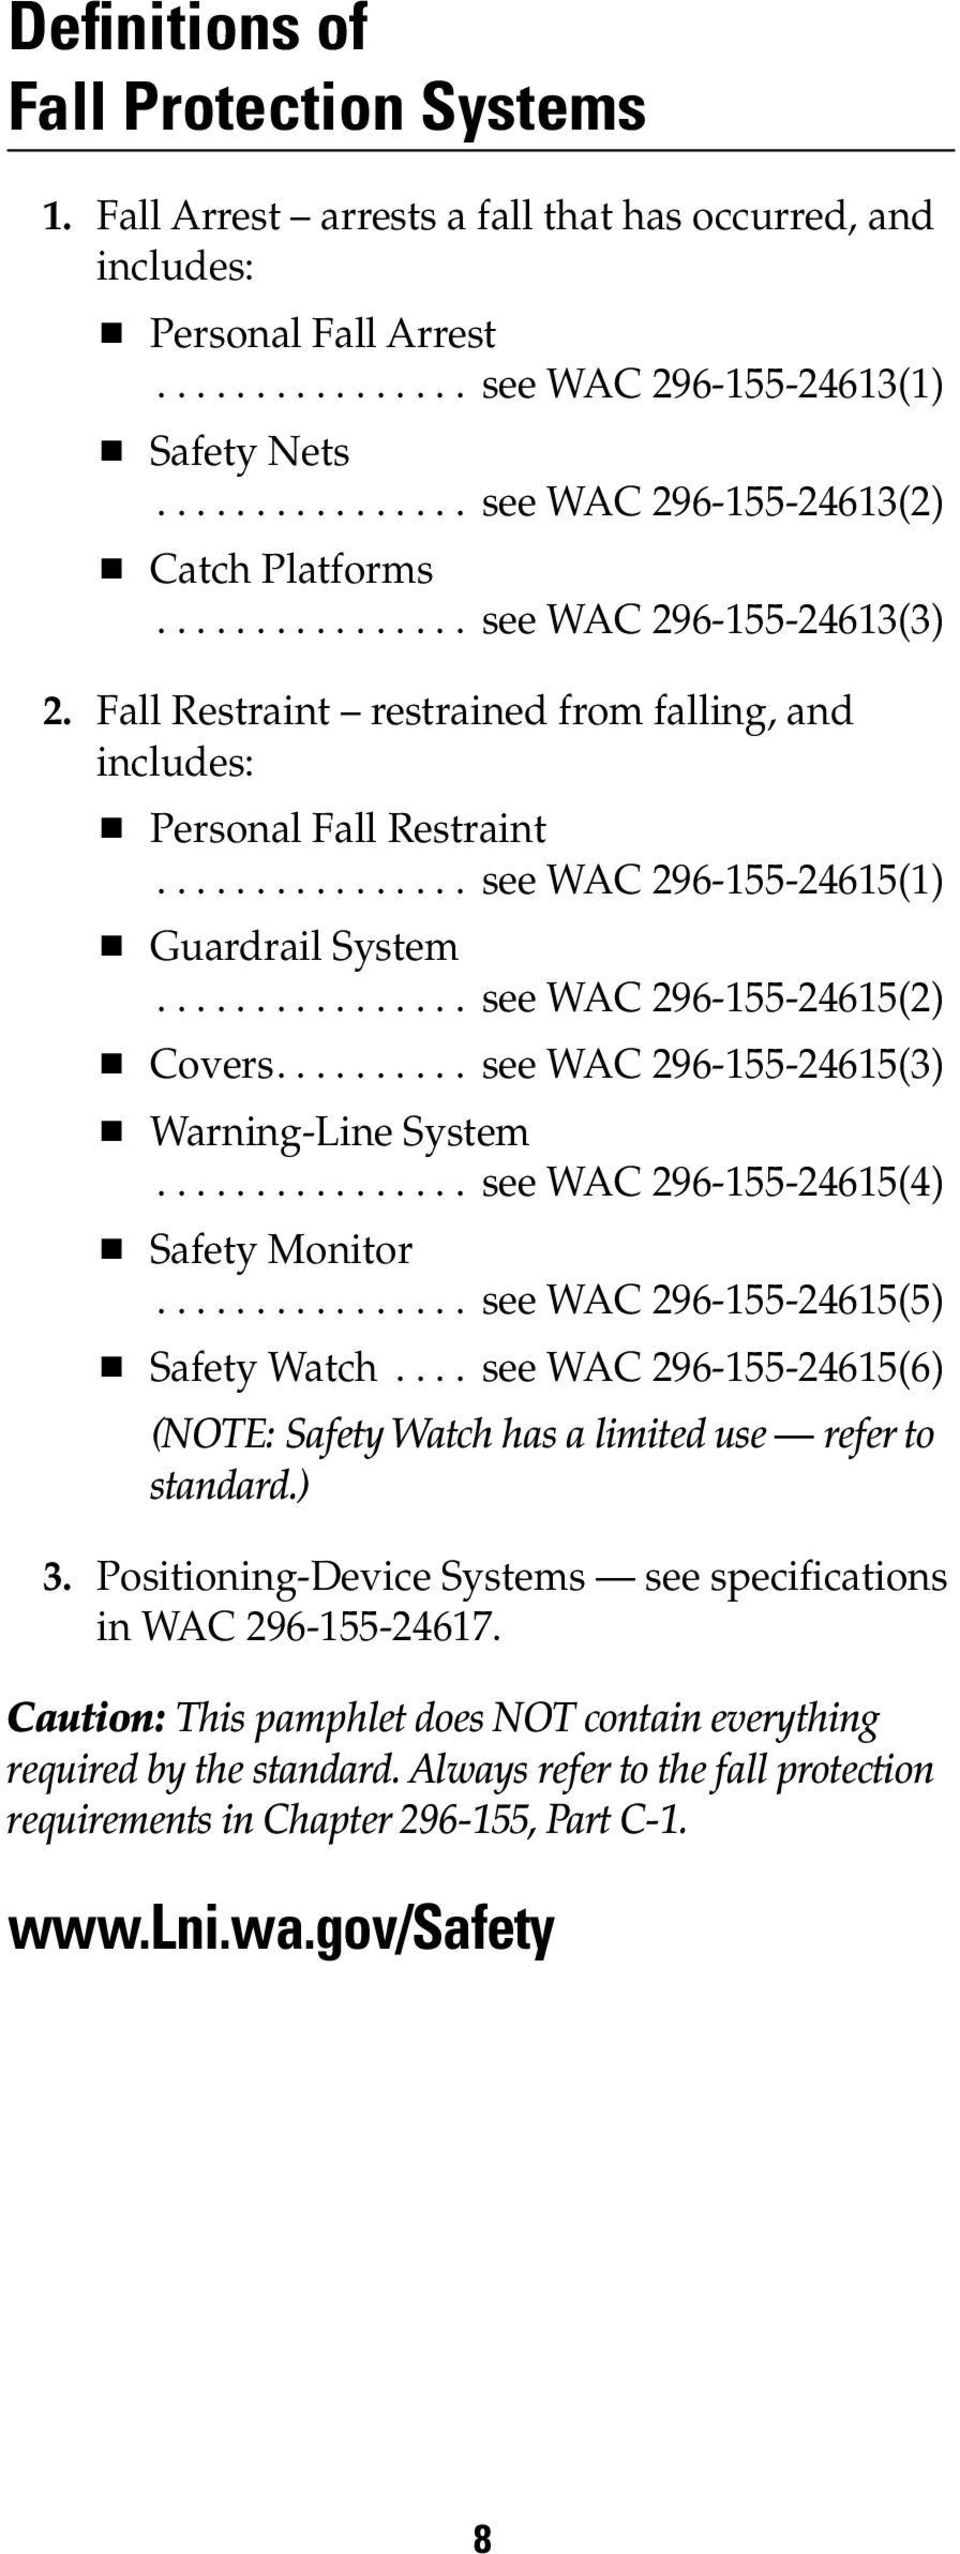 .. see WAC 296-155-24615(2) Covers.... see WAC 296-155-24615(3) Warning-Line System... see WAC 296-155-24615(4) Safety Monitor... see WAC 296-155-24615(5) Safety Watch.